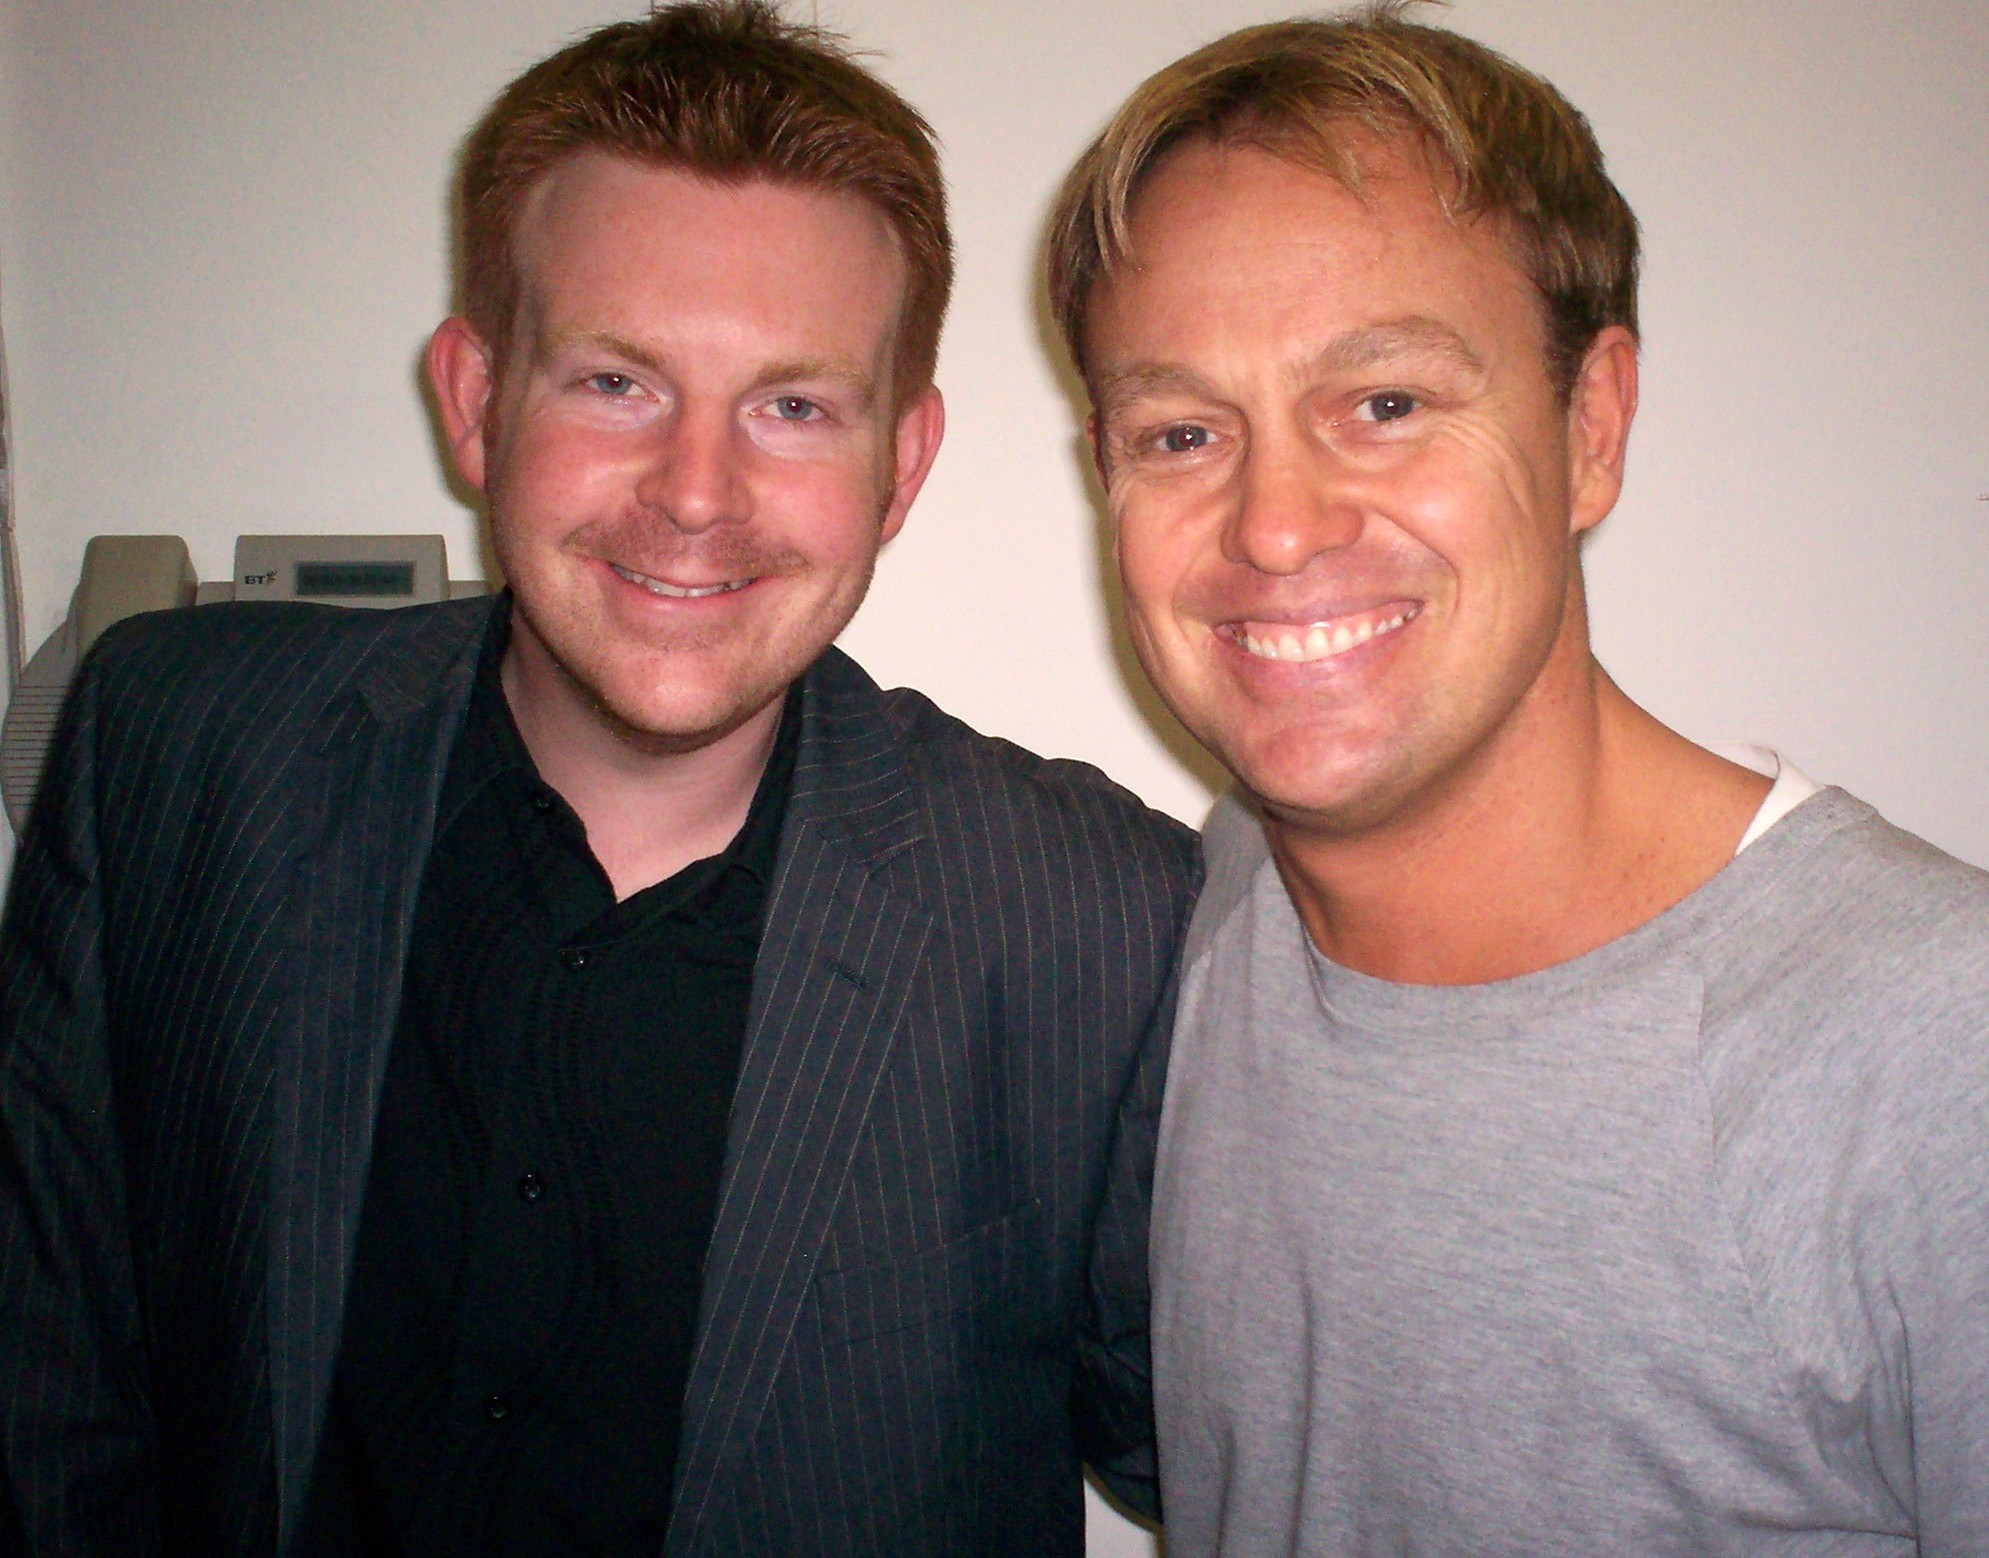 Enjoy Celebrity Radio's Jason Donovan Exclusive Life Story Interview…. Jason Donovan Starred in the original West End cast of 'Priscilla Queen Of The Desert' in 2009. […]